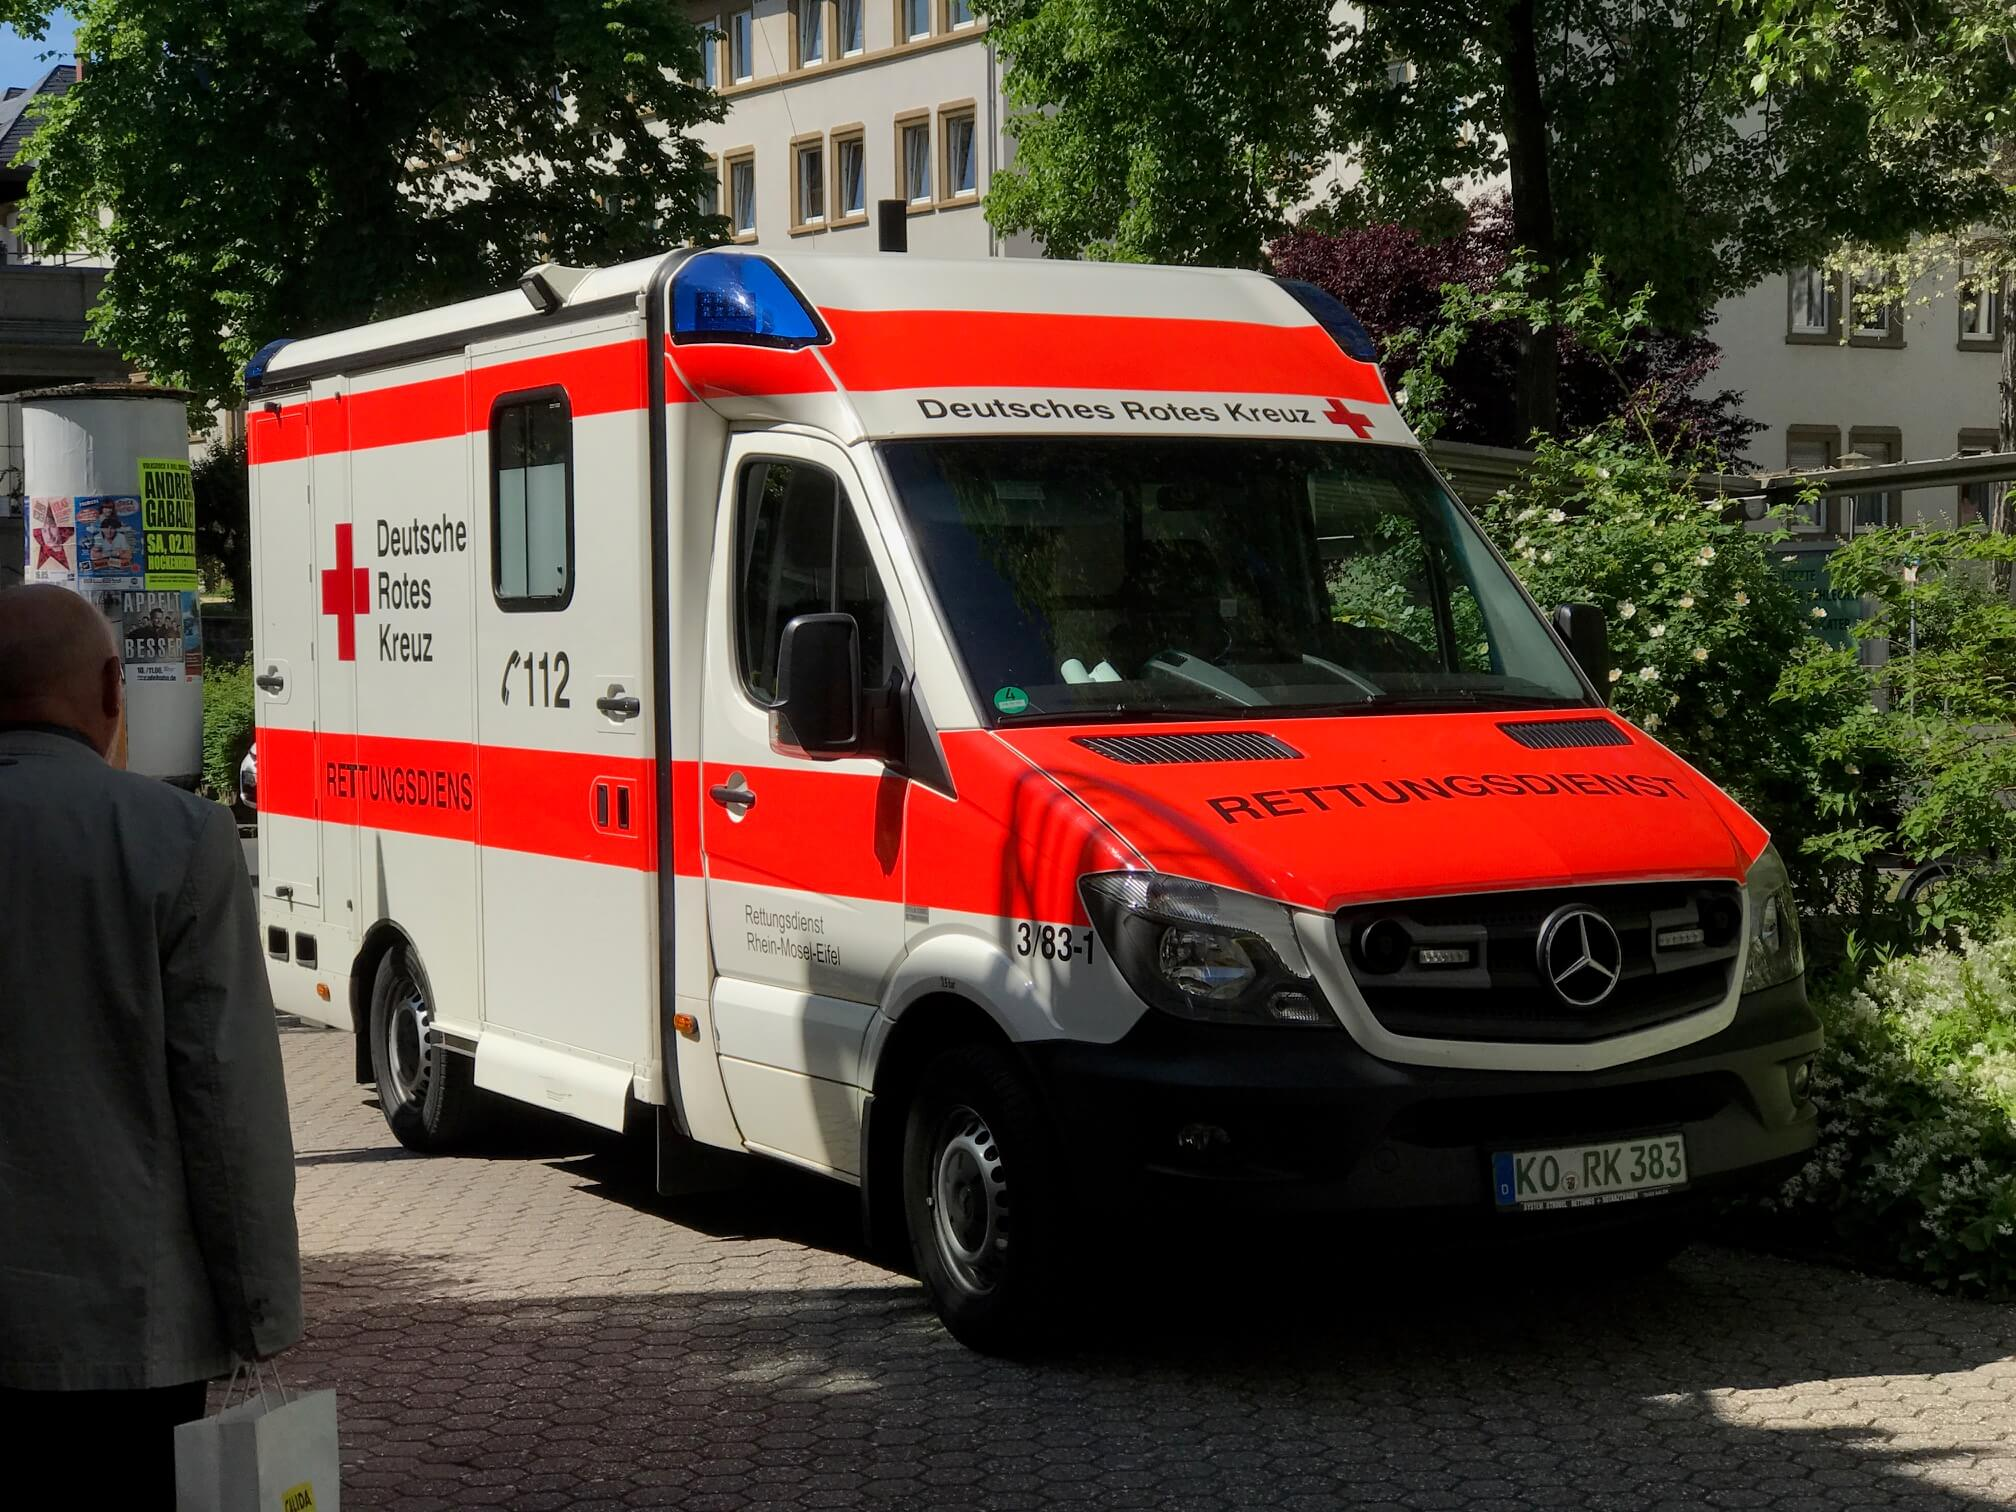 Nice looking German Ambulance at the hospital in Koblenz